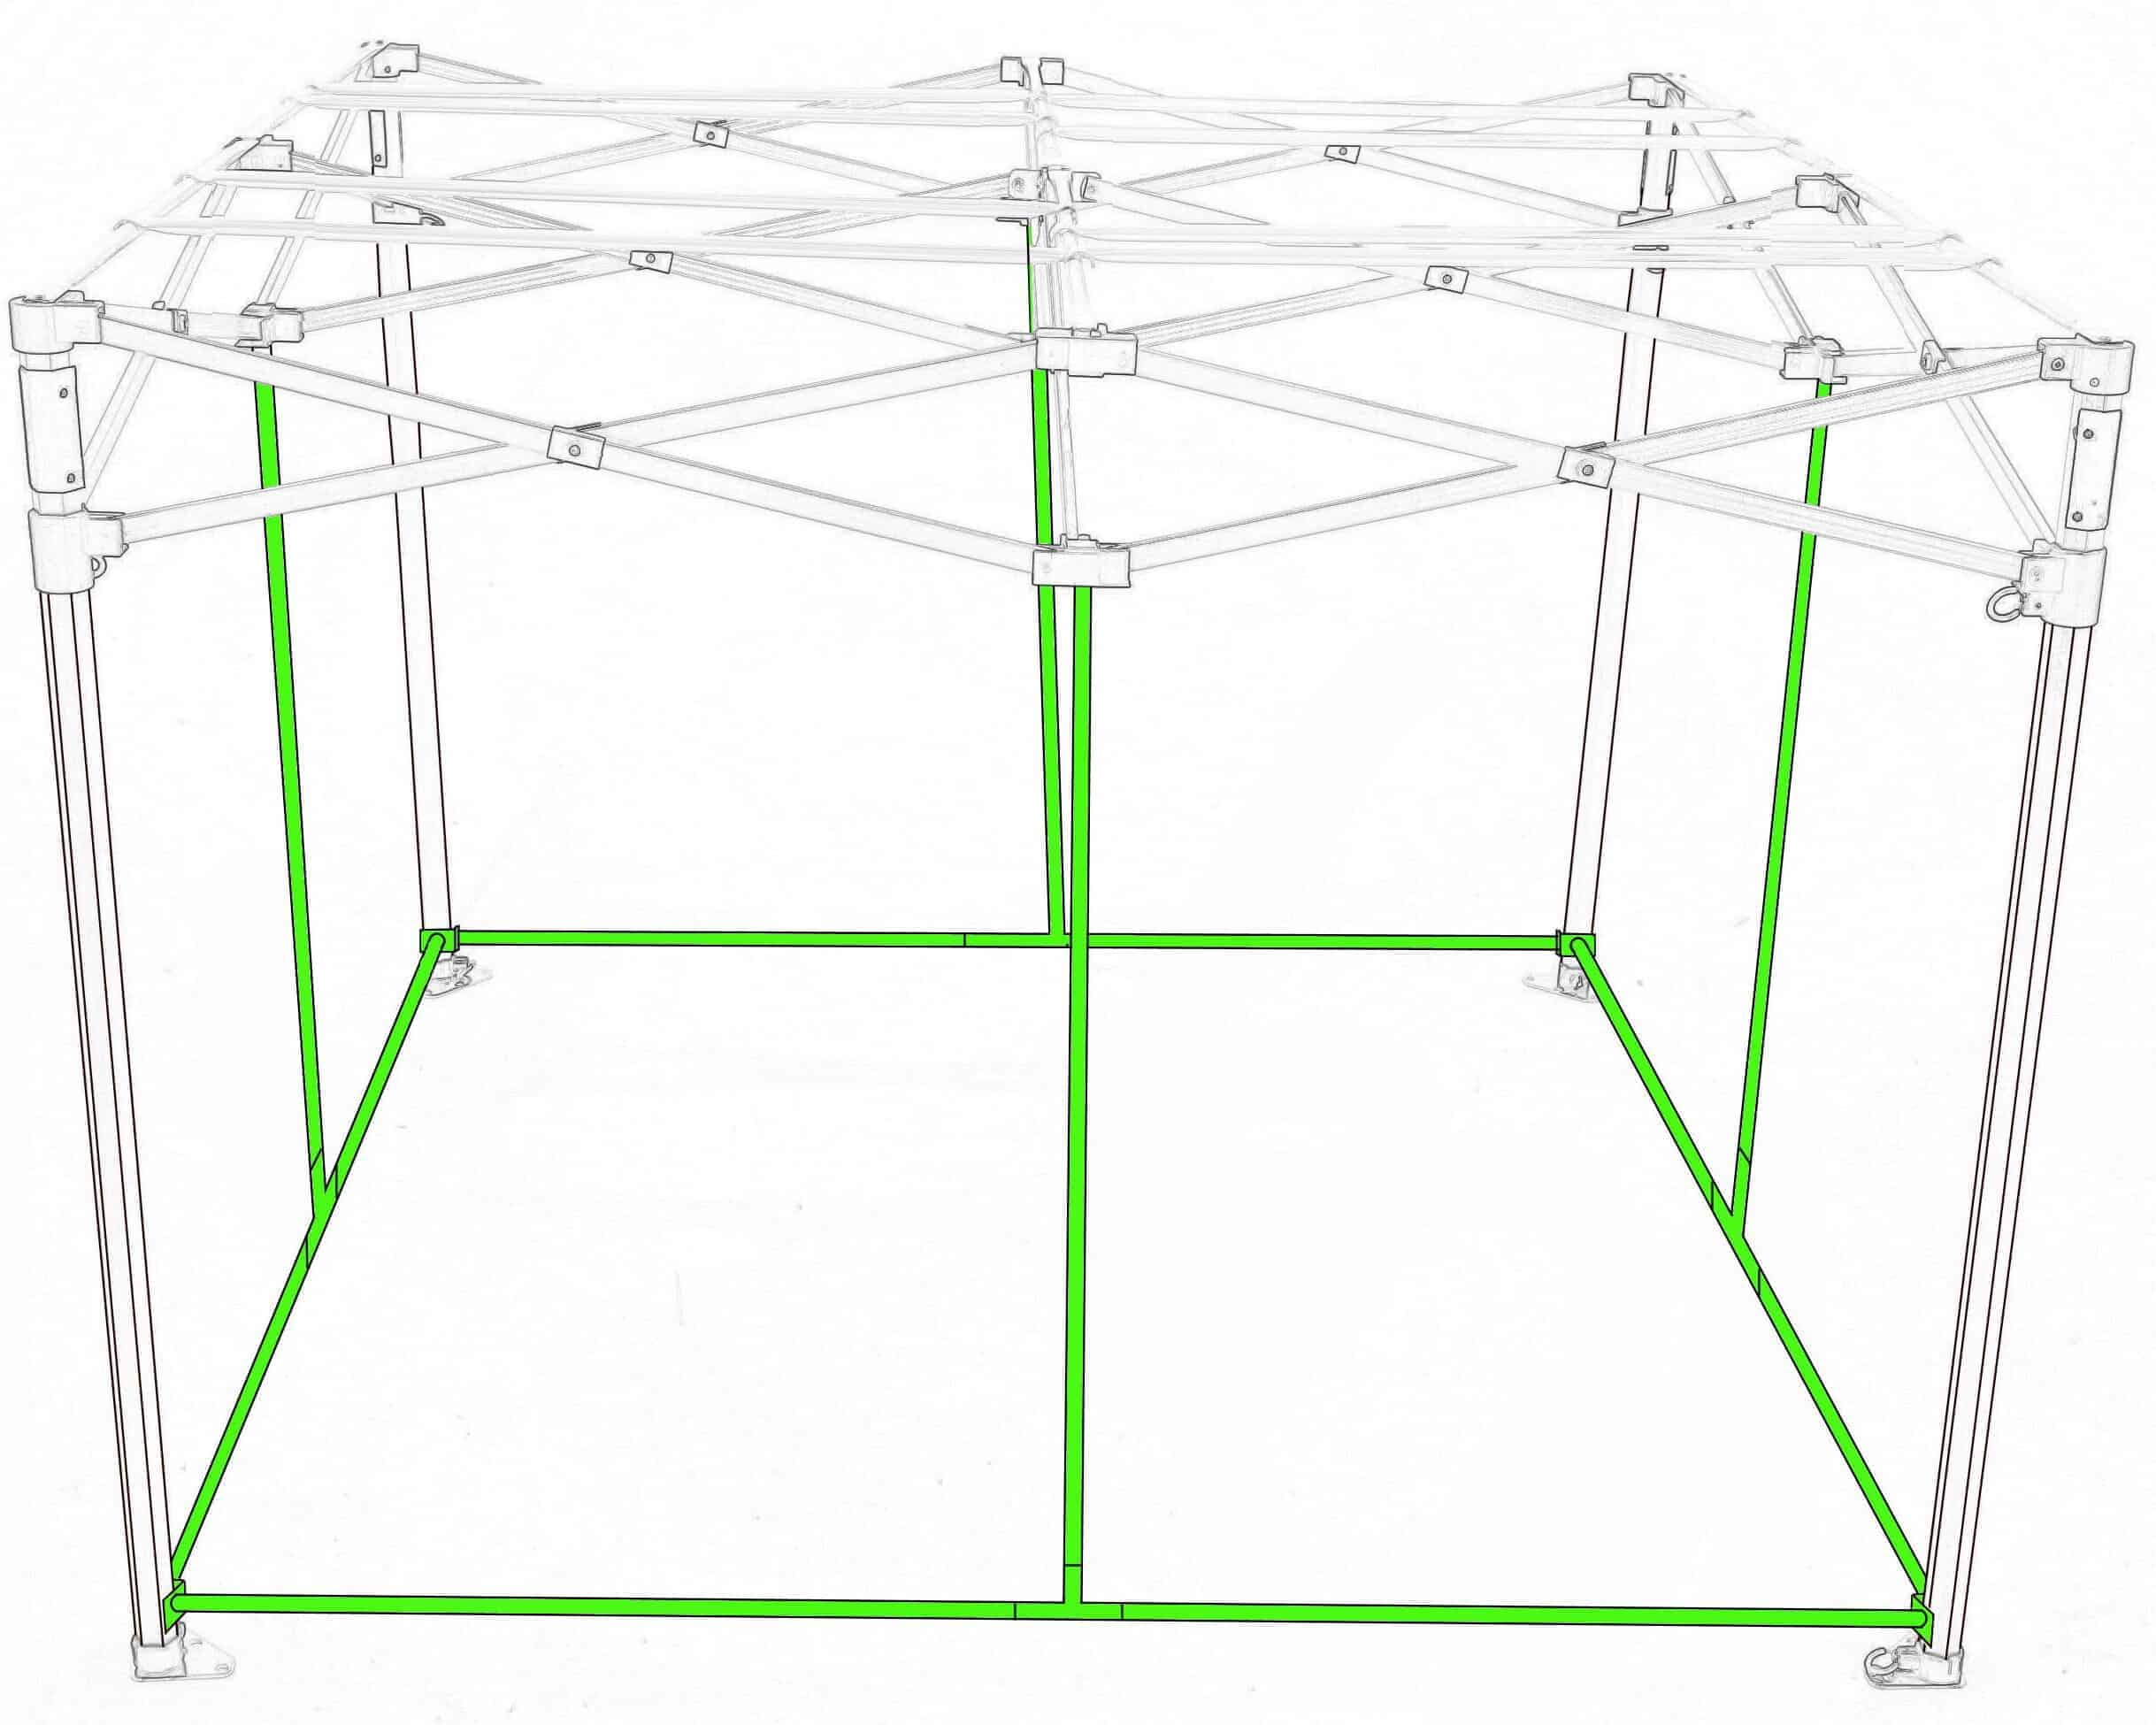 Quick qube by green qube expansion bars for grow tent - floor